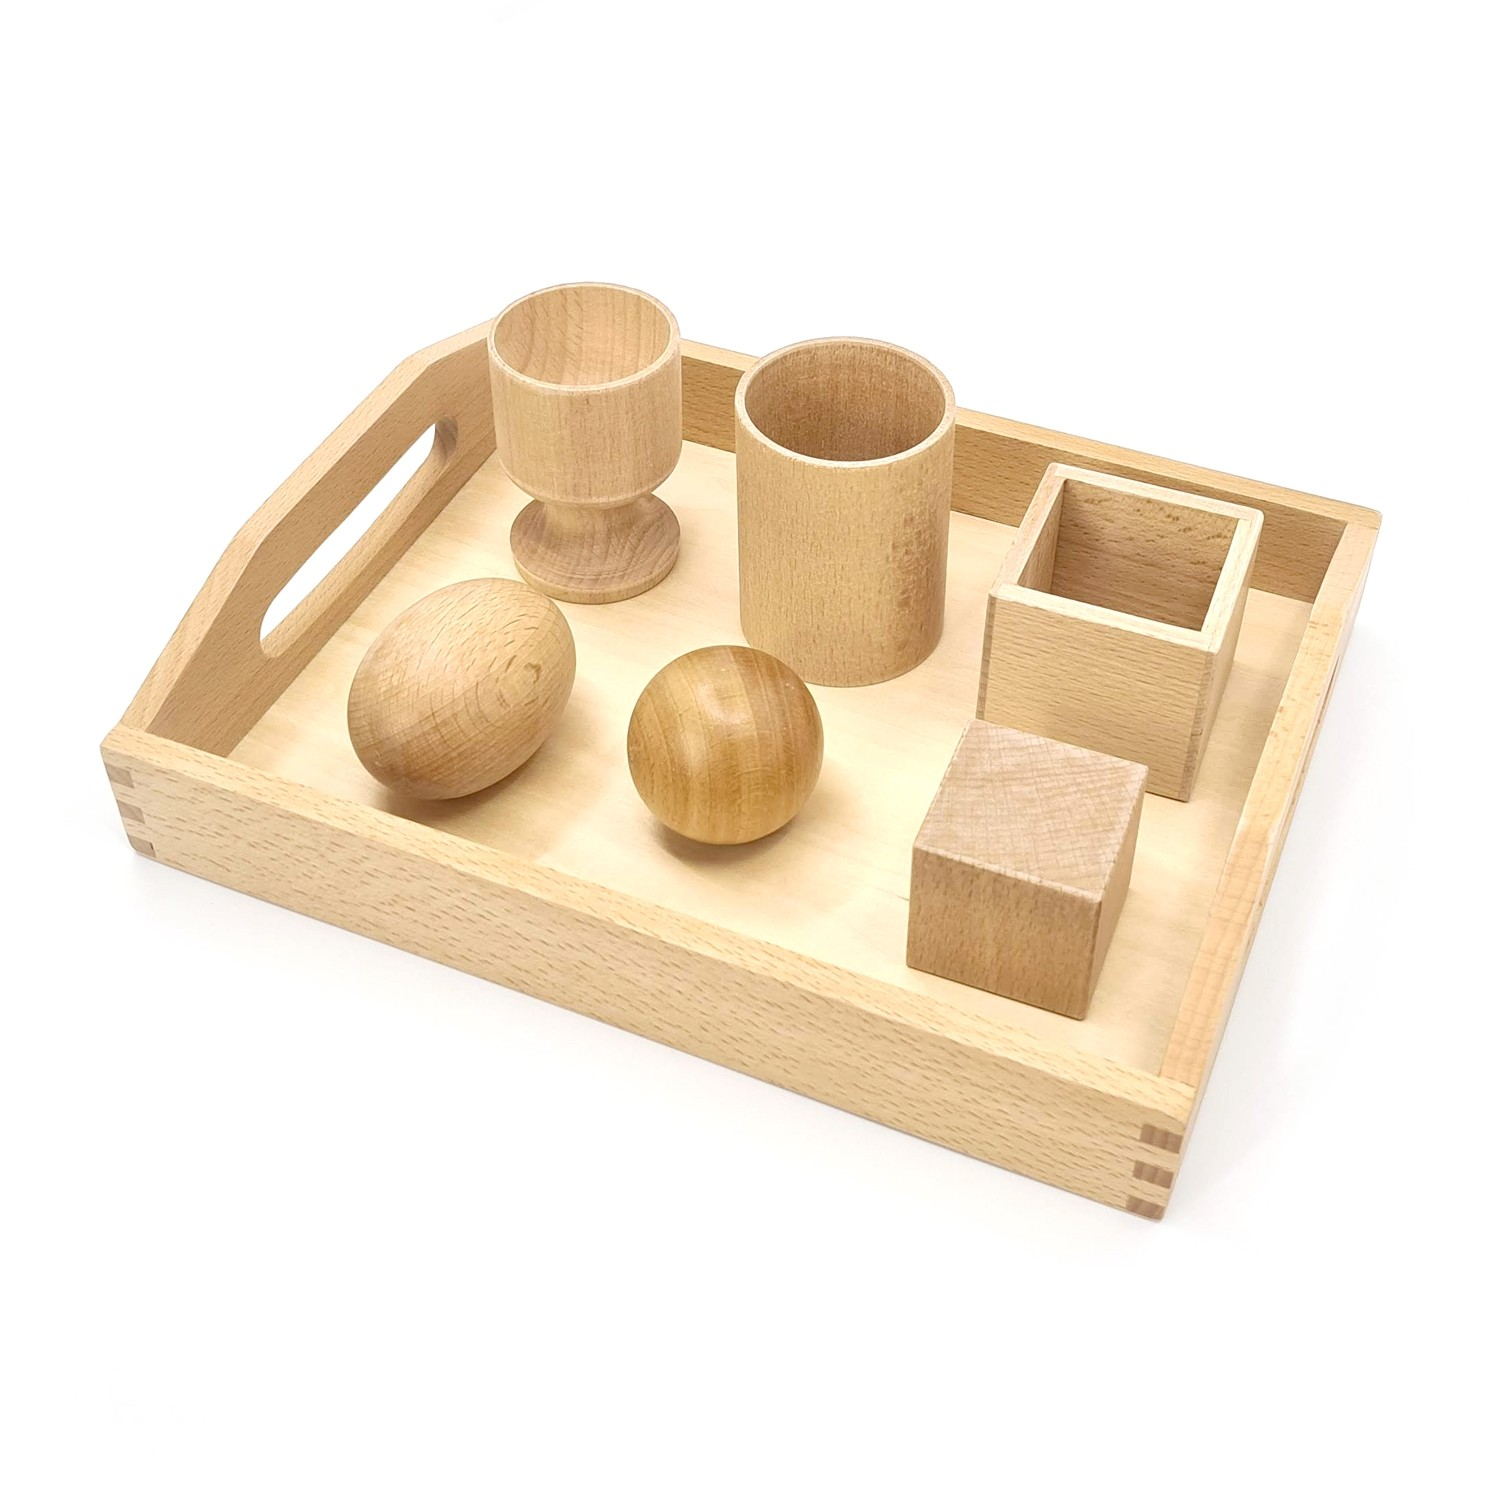 Montessori 3D Object Fitting Exercise